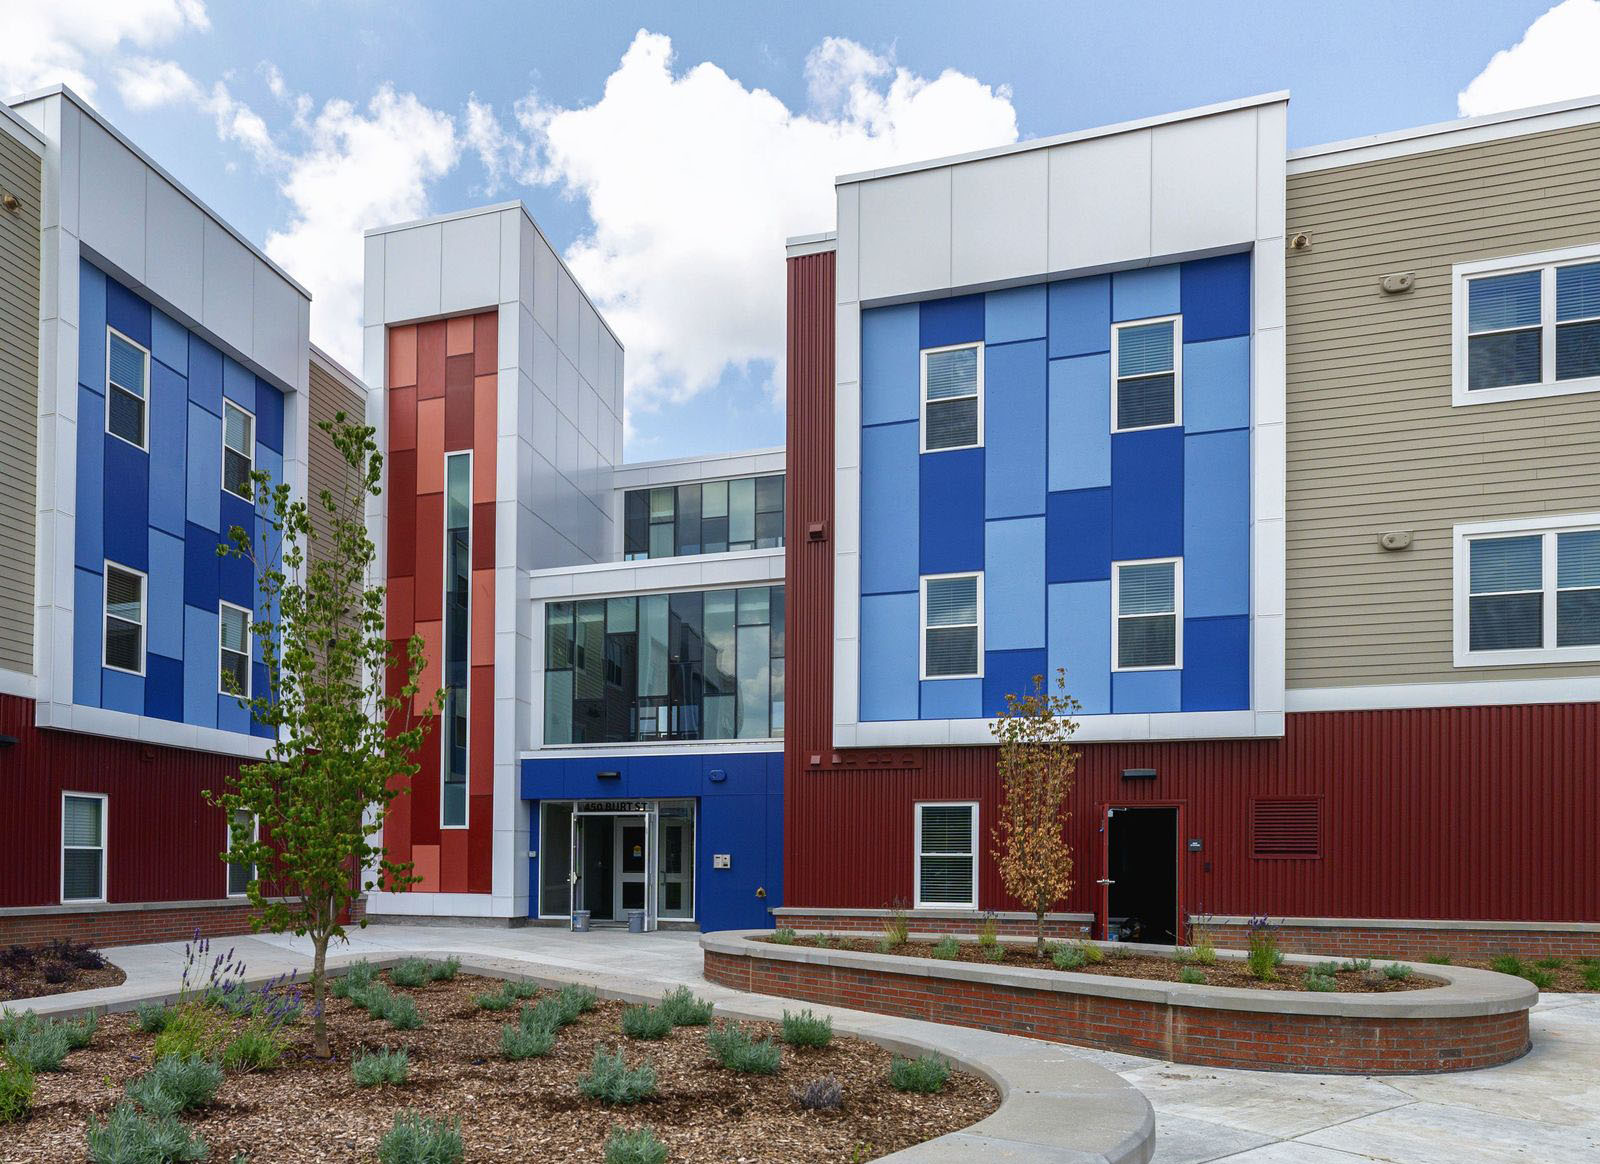 Bright blue and red panels adorn an apartment building